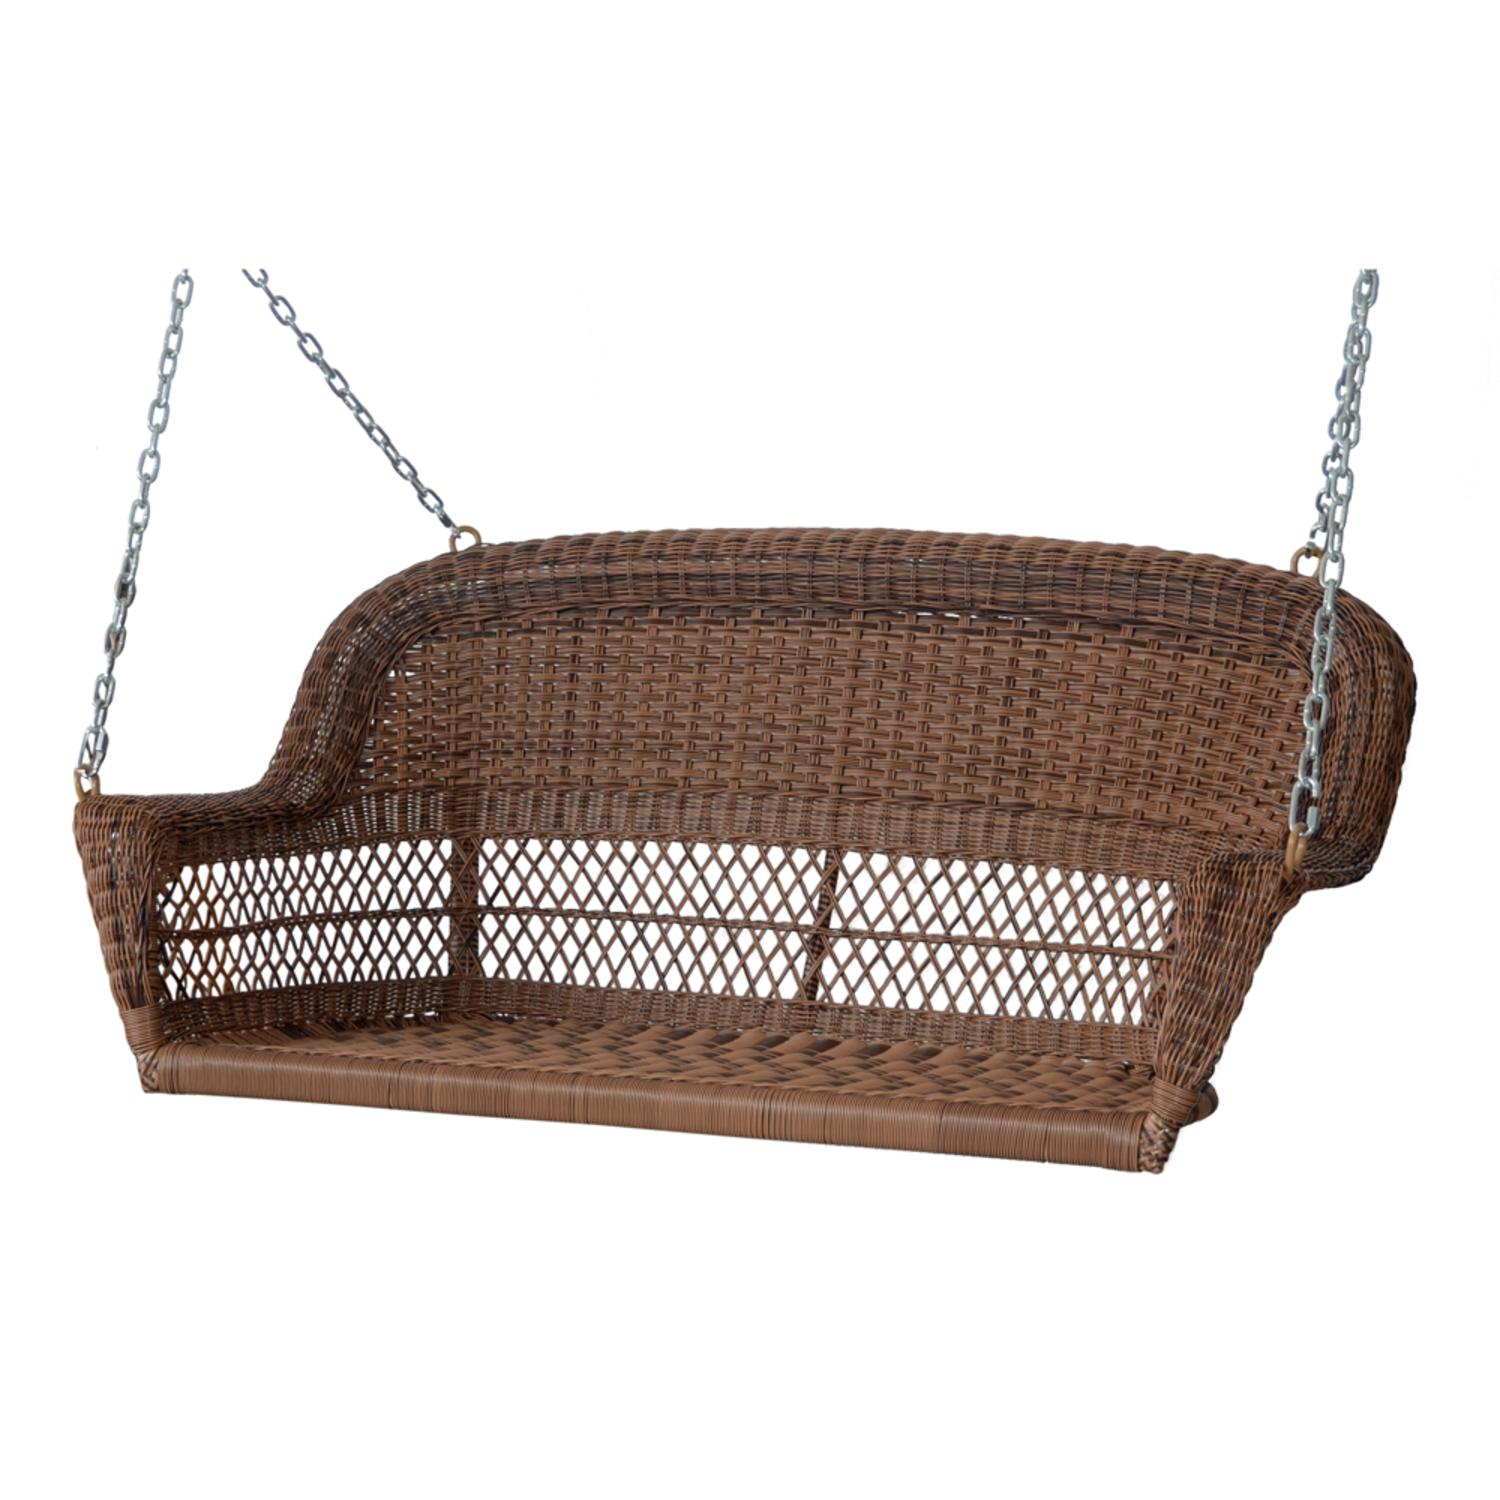 "51.5"" Hand Woven Honey Brown Resin Wicker Outdoor Porch Swing by Porch Swings"